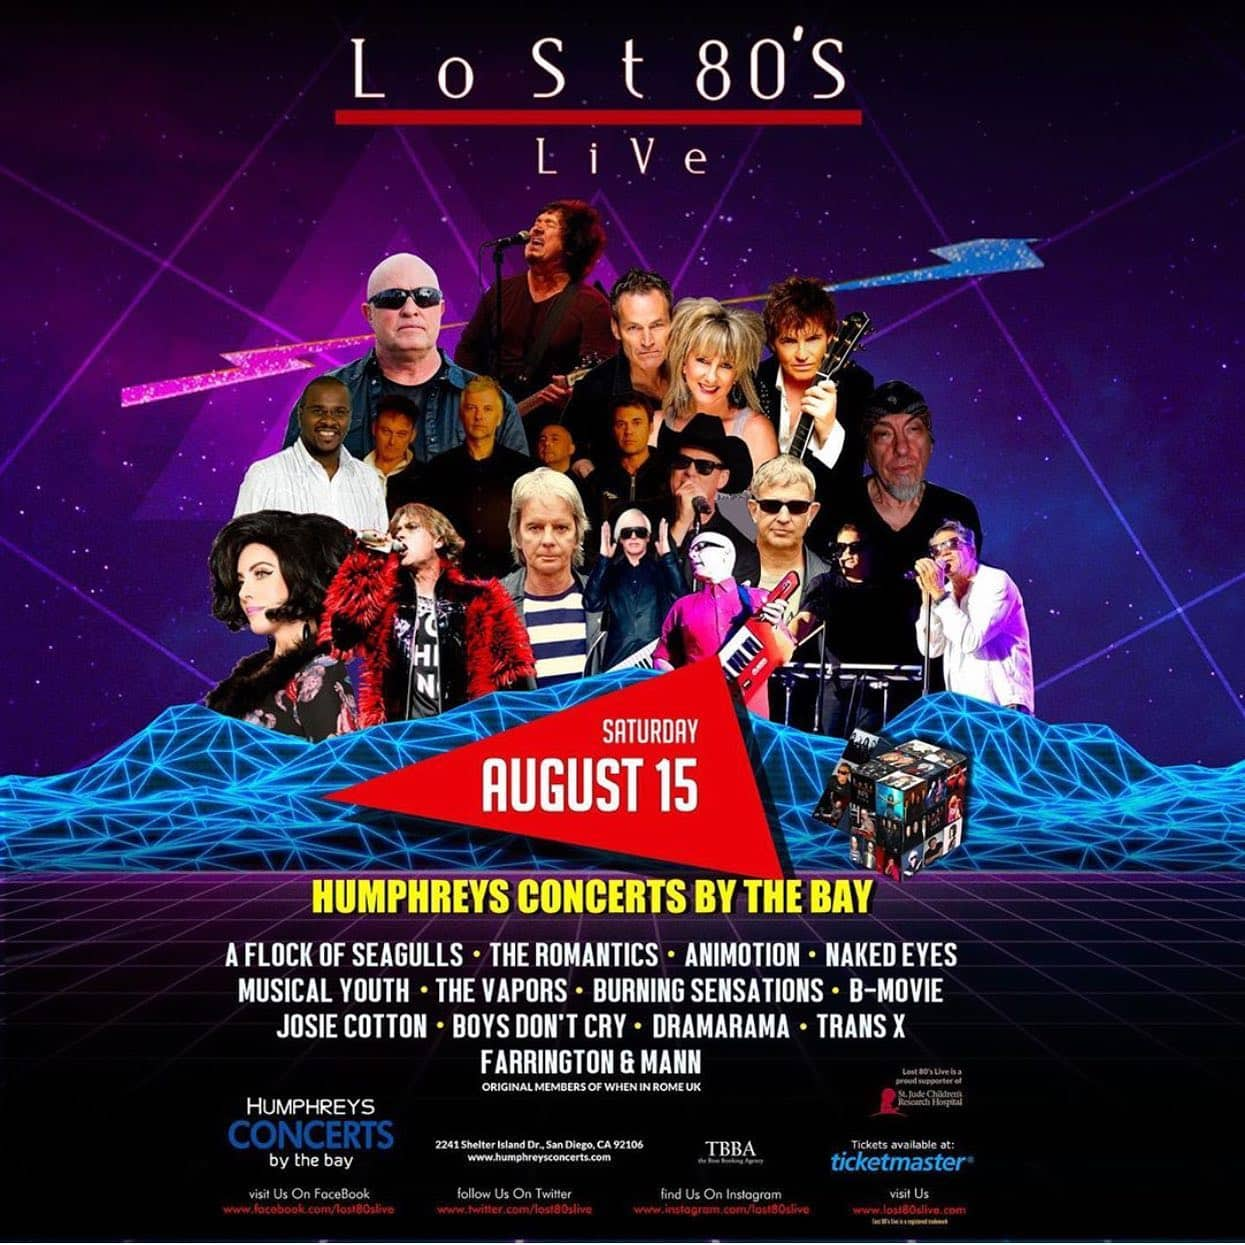 Lost 80s Live: San Diego, CA